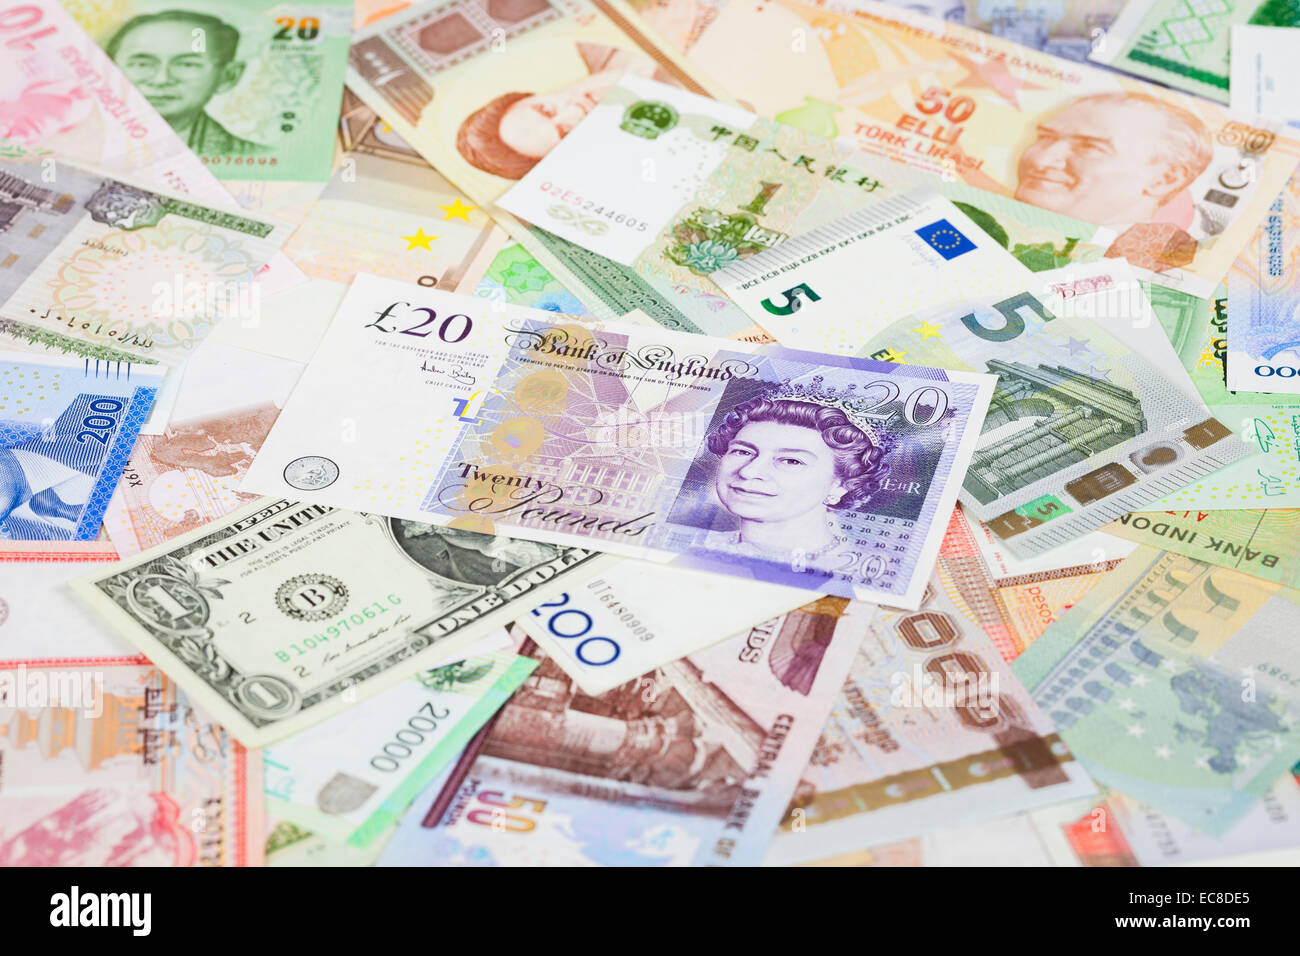 International currency banknotes, focus on british pound - Stock Image